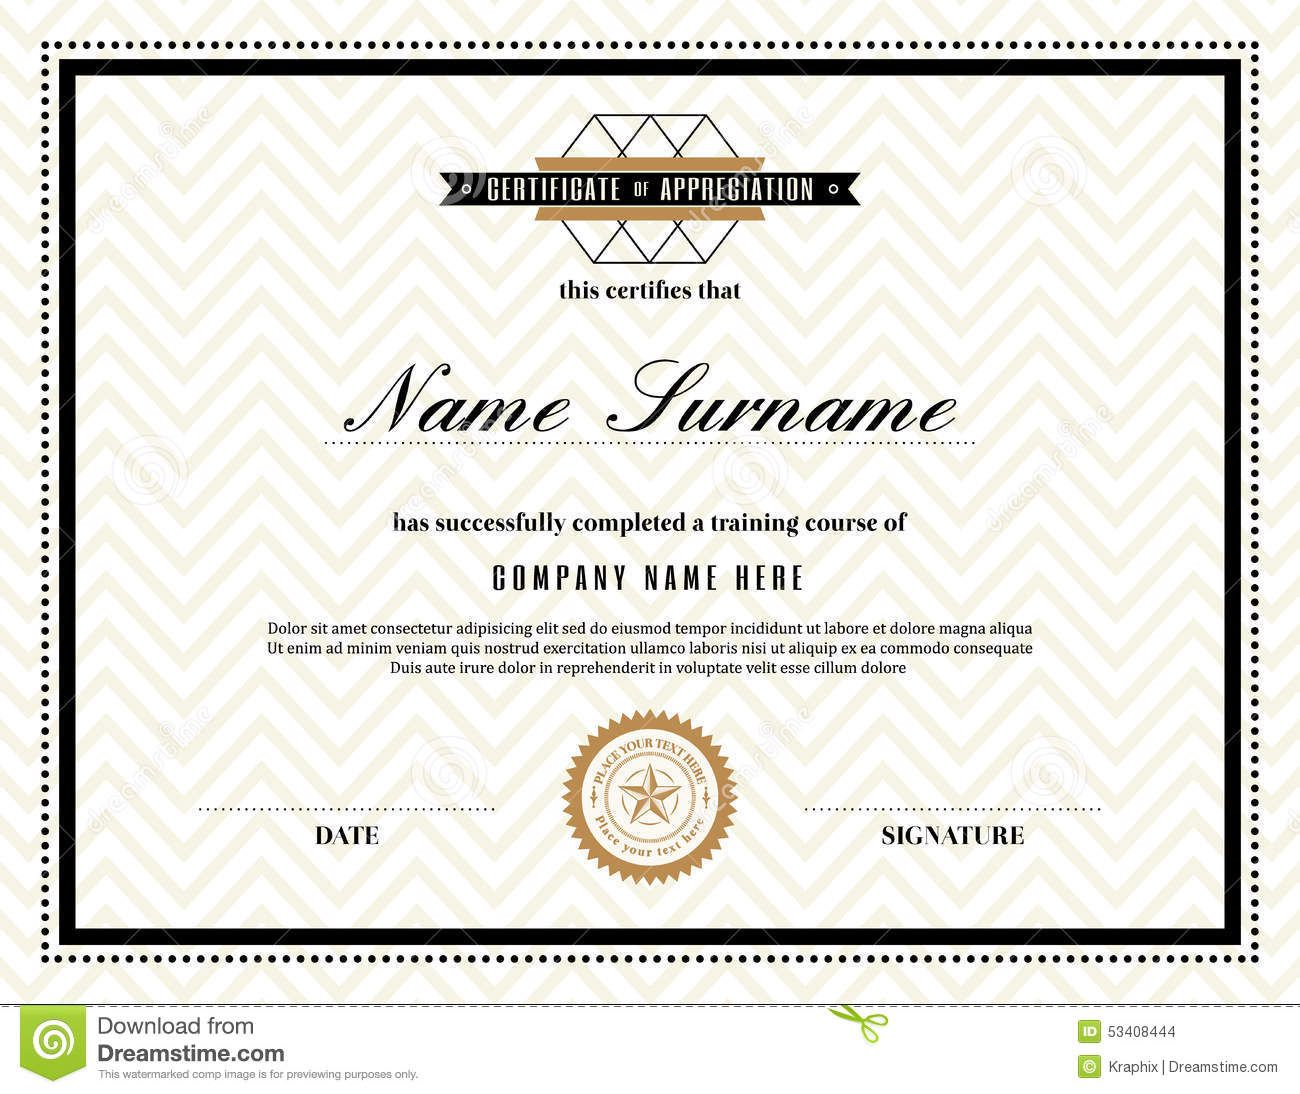 014 Unforgettable Certificate Of Appreciation Template Free Highest Quality  Microsoft Word Download Publisher EditableFull